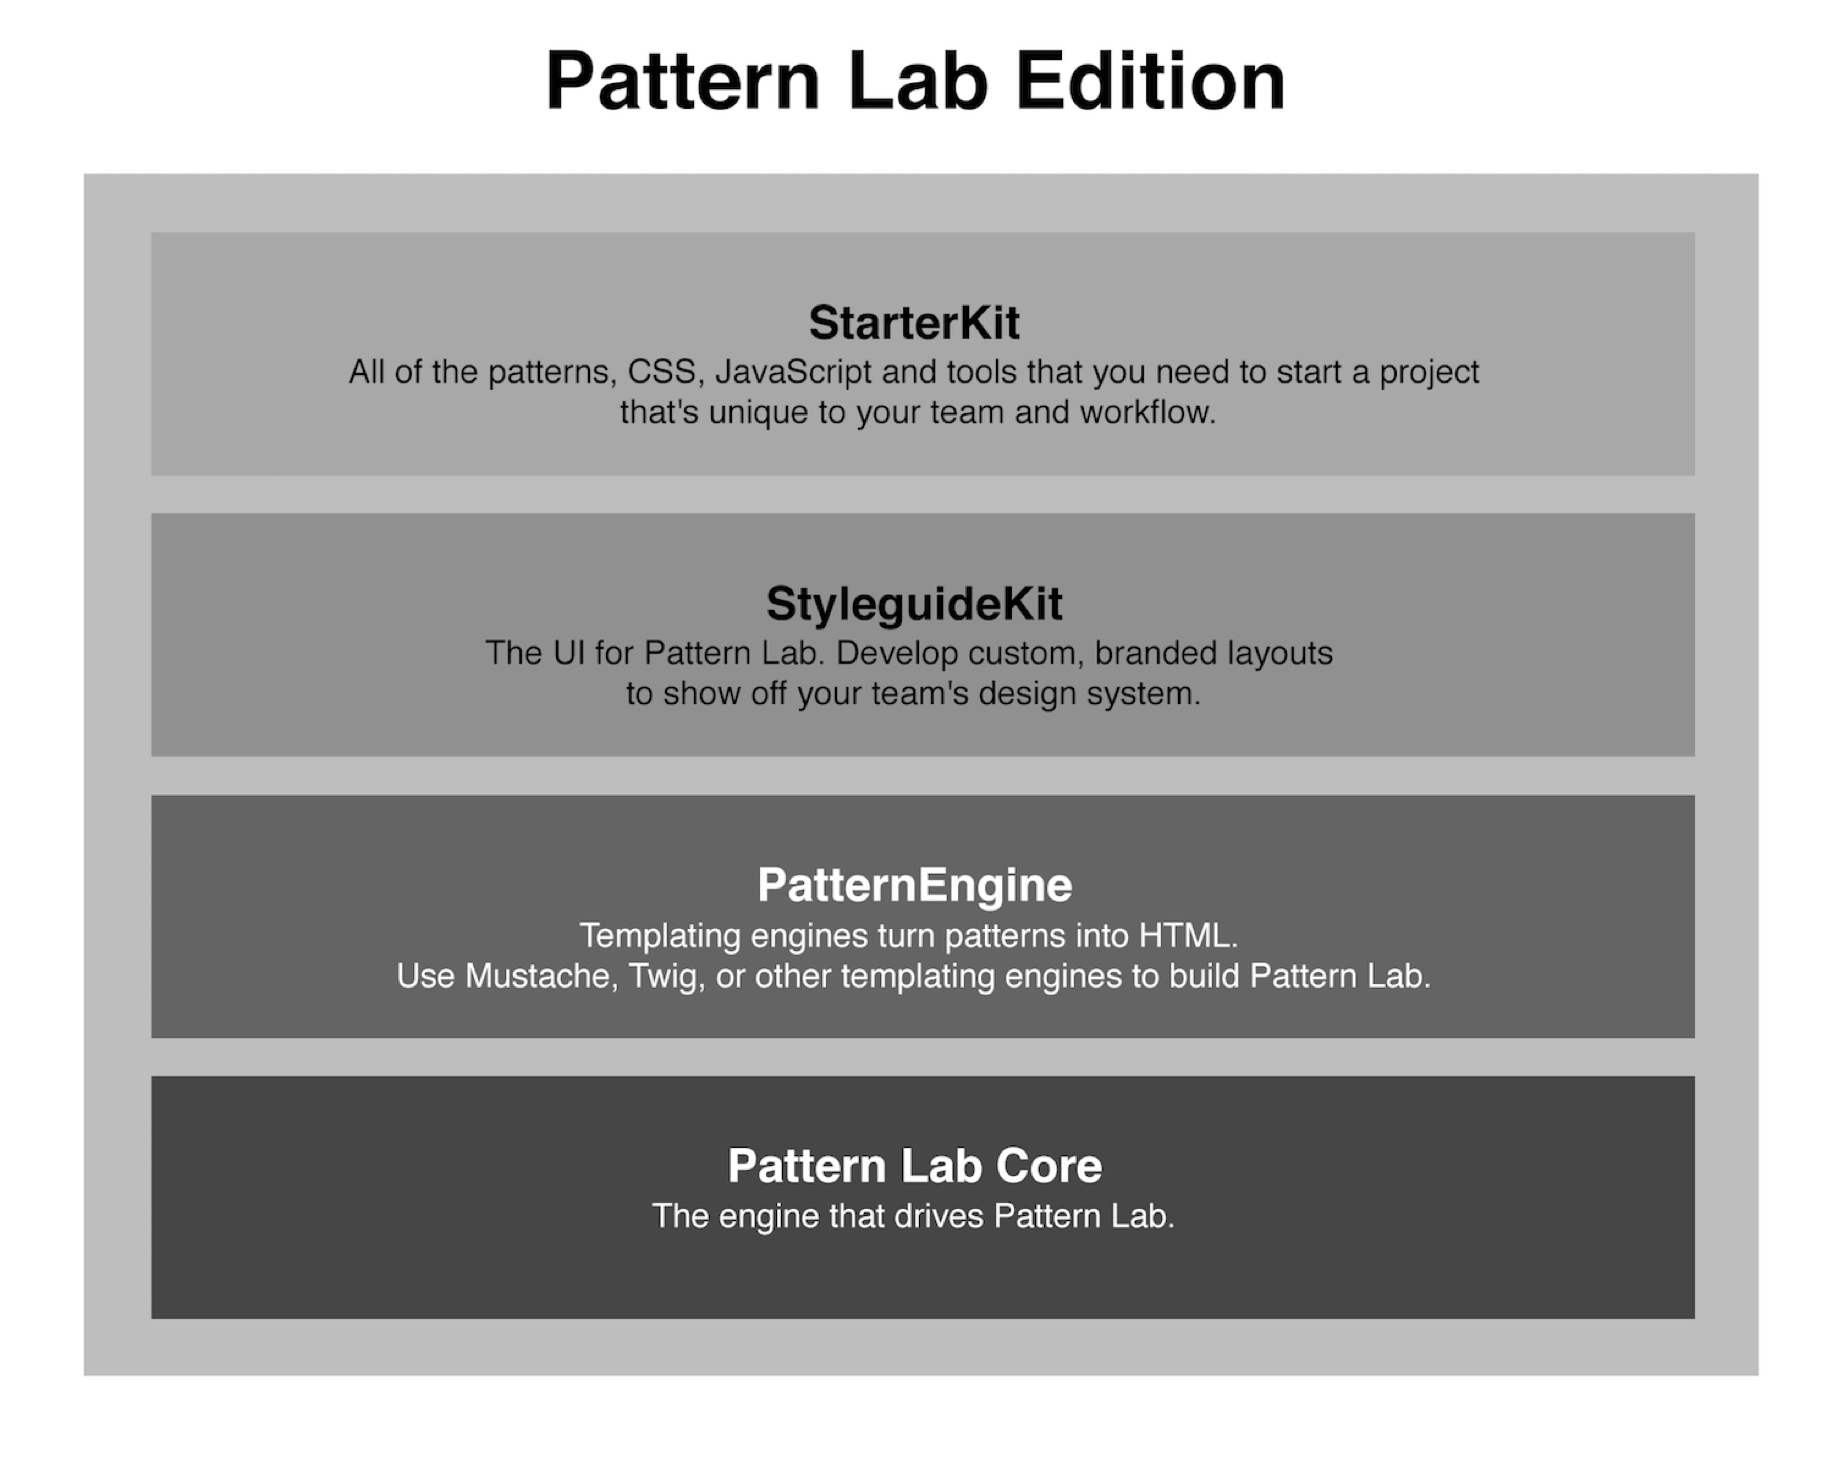 Insights - Taking PatternLab Modularity to The NextLevel 1